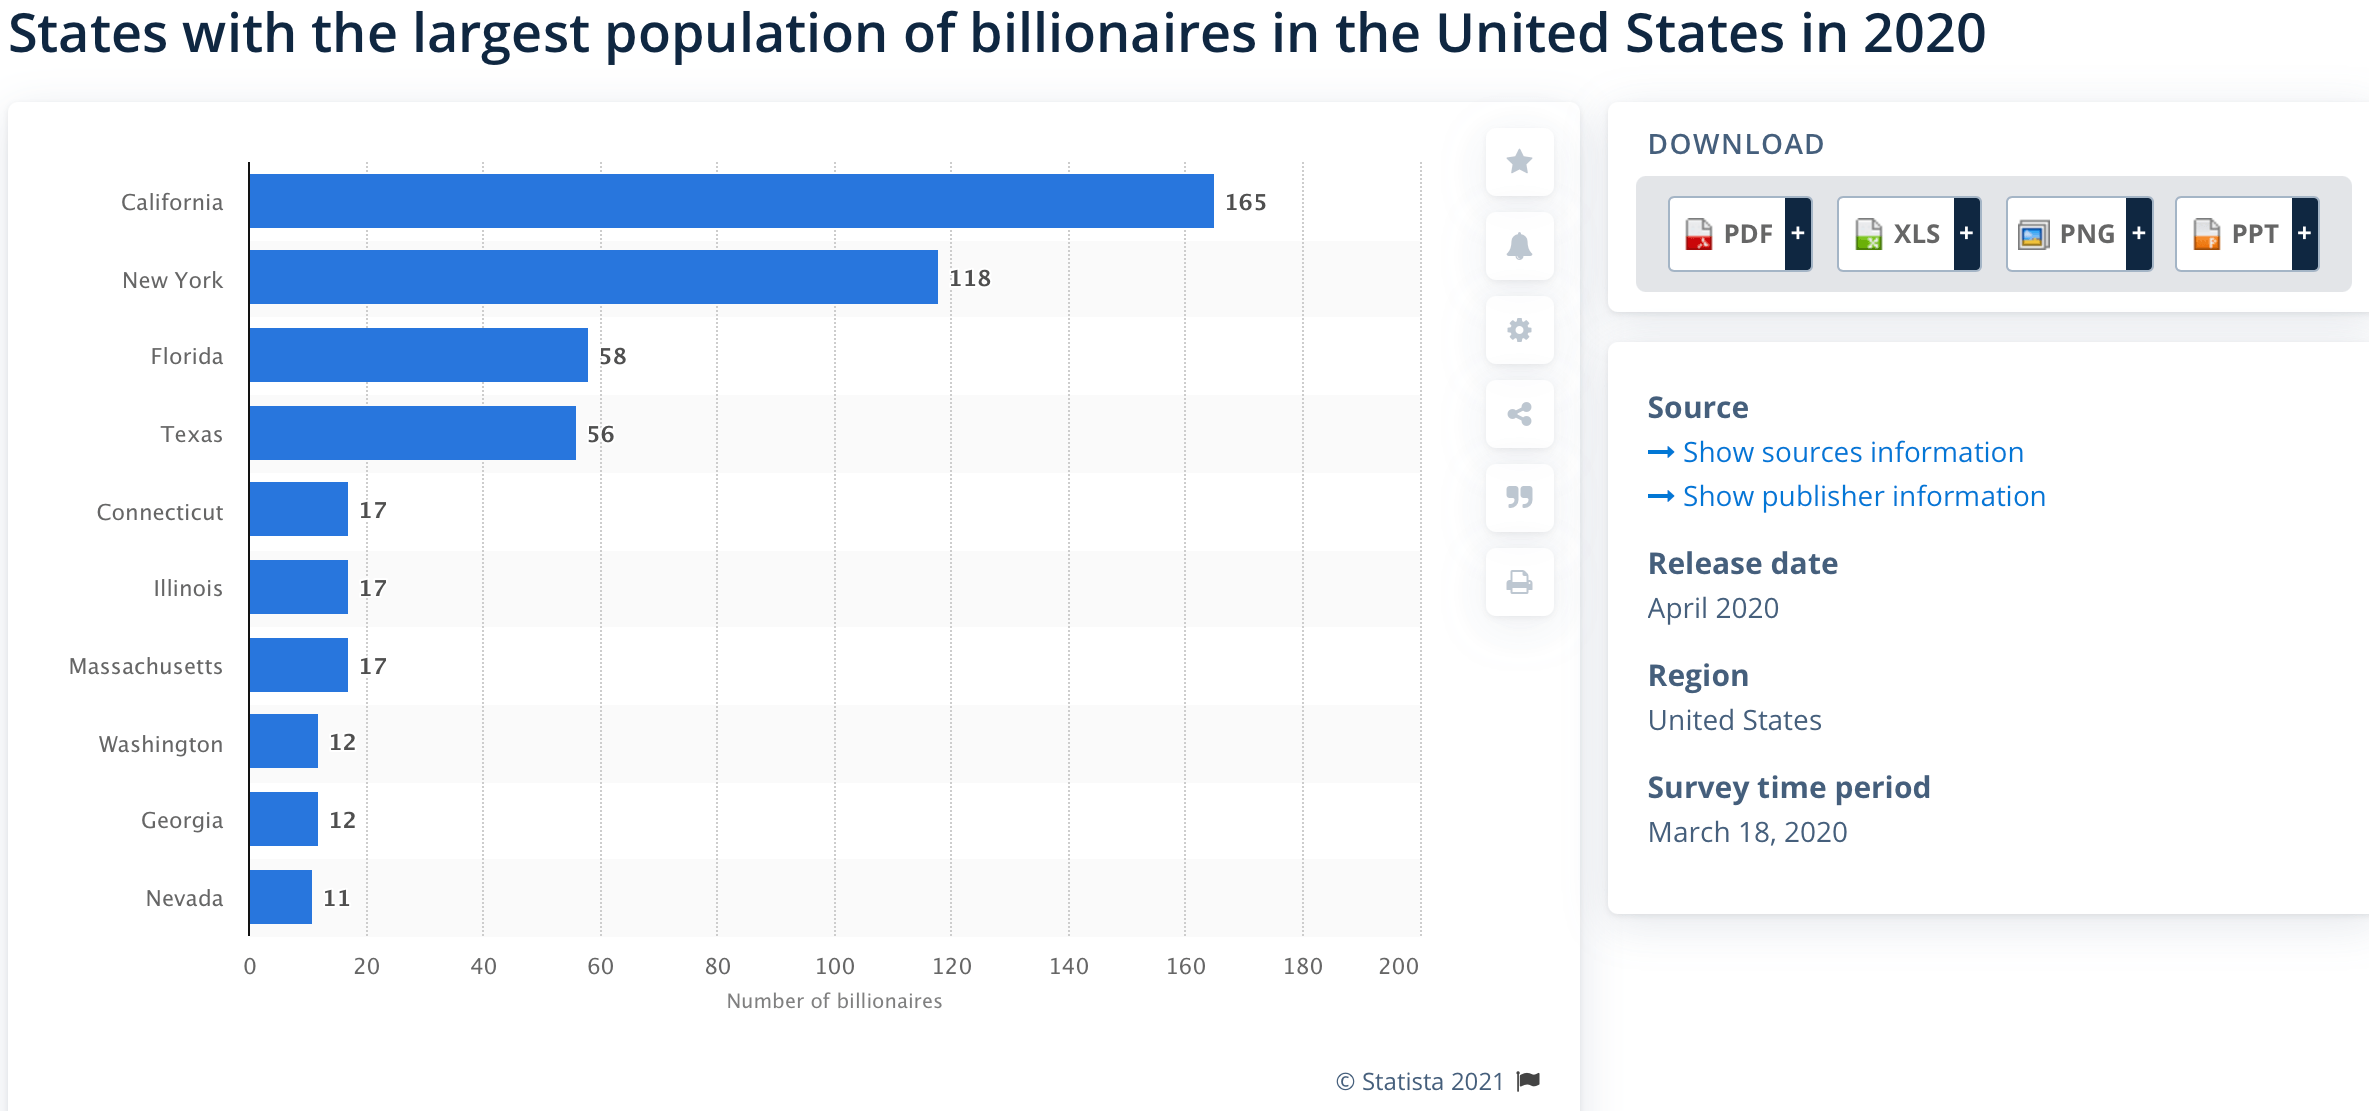 Staes with the most number of billionaires